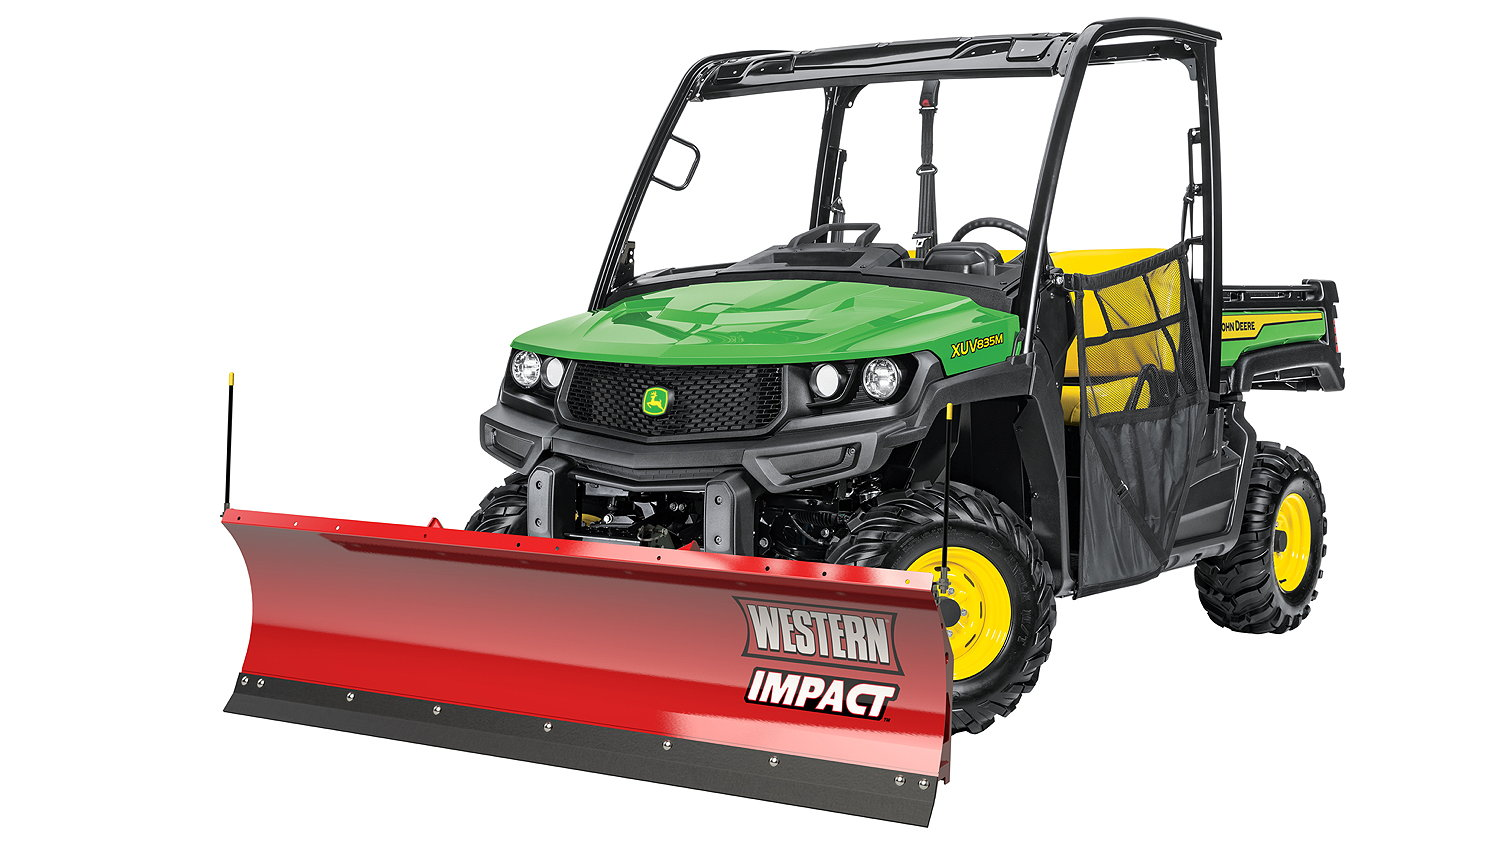 The new 1.82m Western Impact snow blade for the John Deere Gator